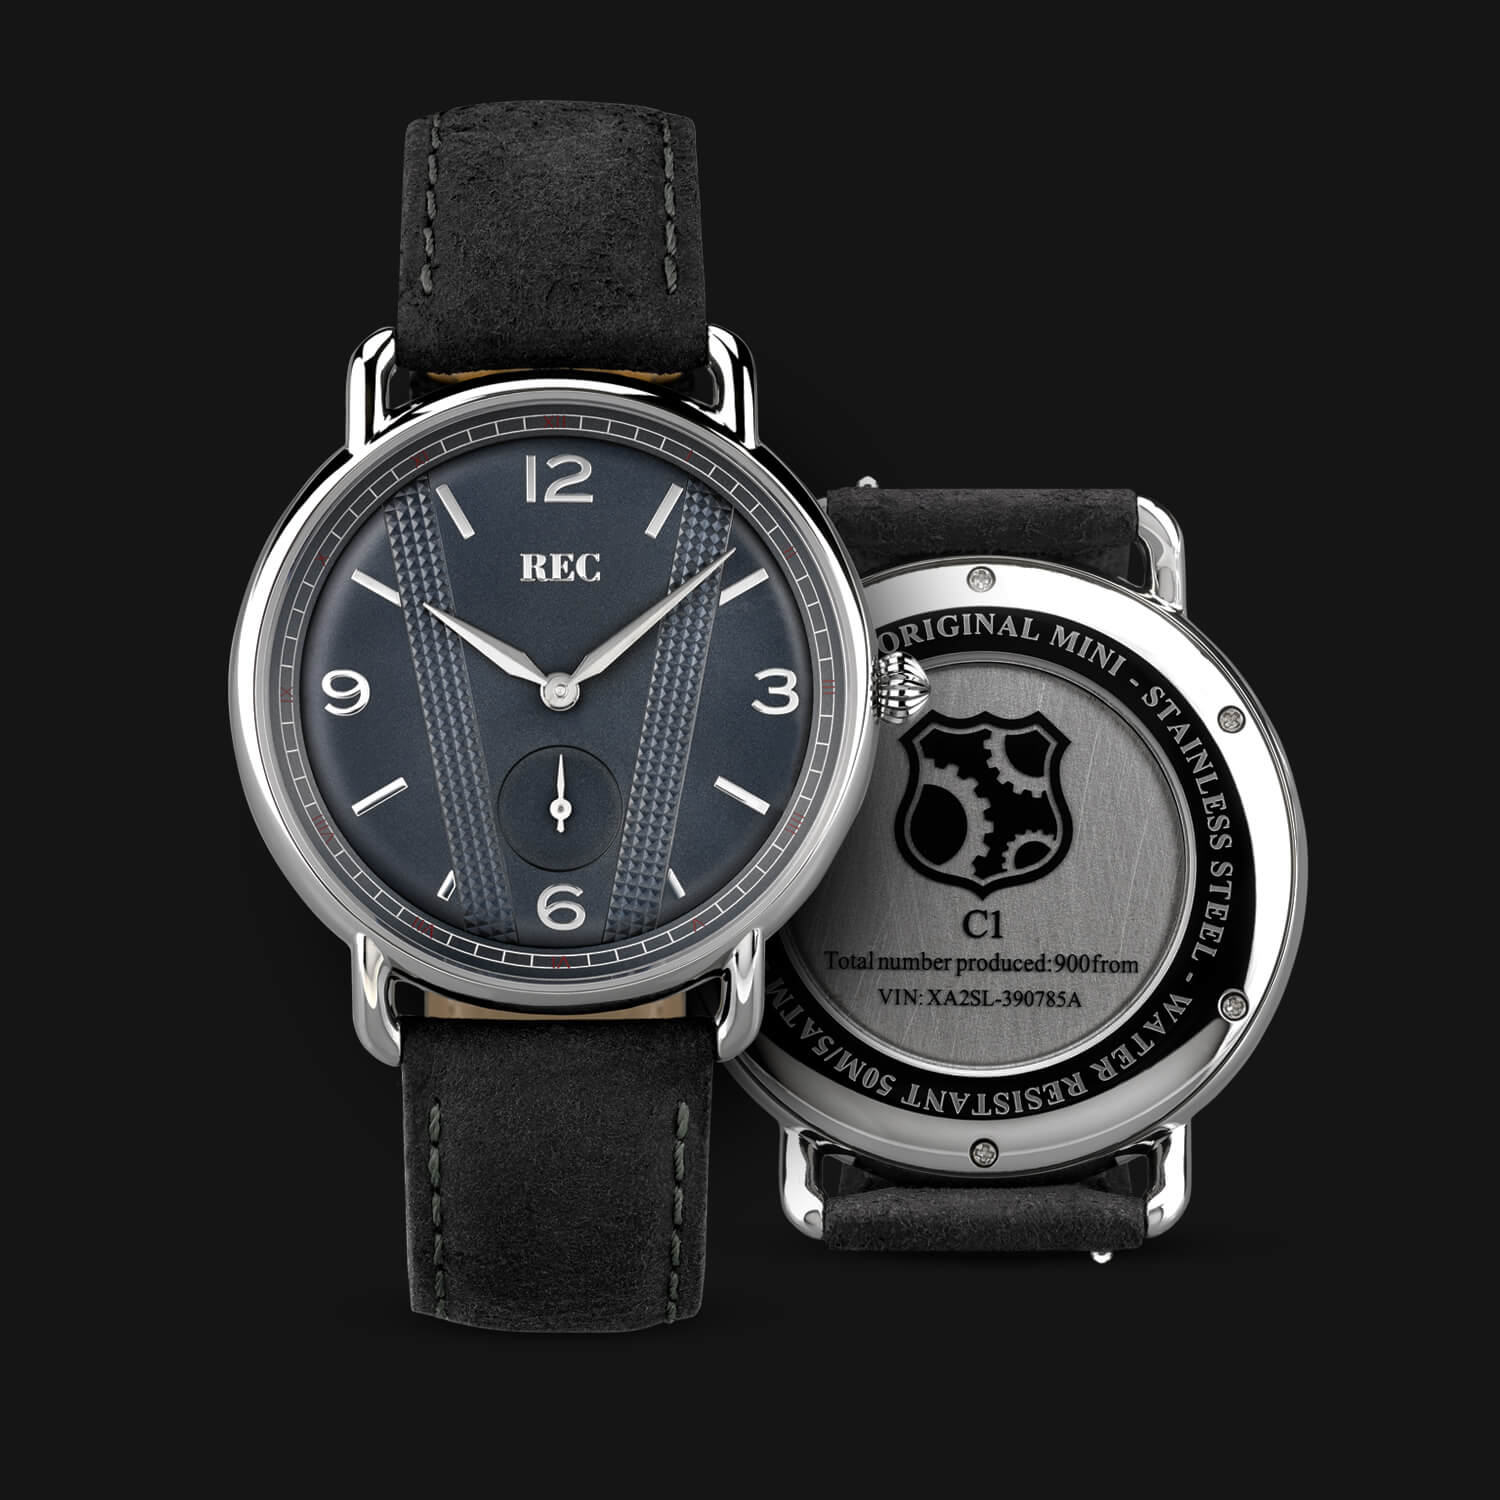 gentleman in watches you on the are between will watch bar img worn manly because gap a learned thread of find nato that needs always fixed every man military straps lugs